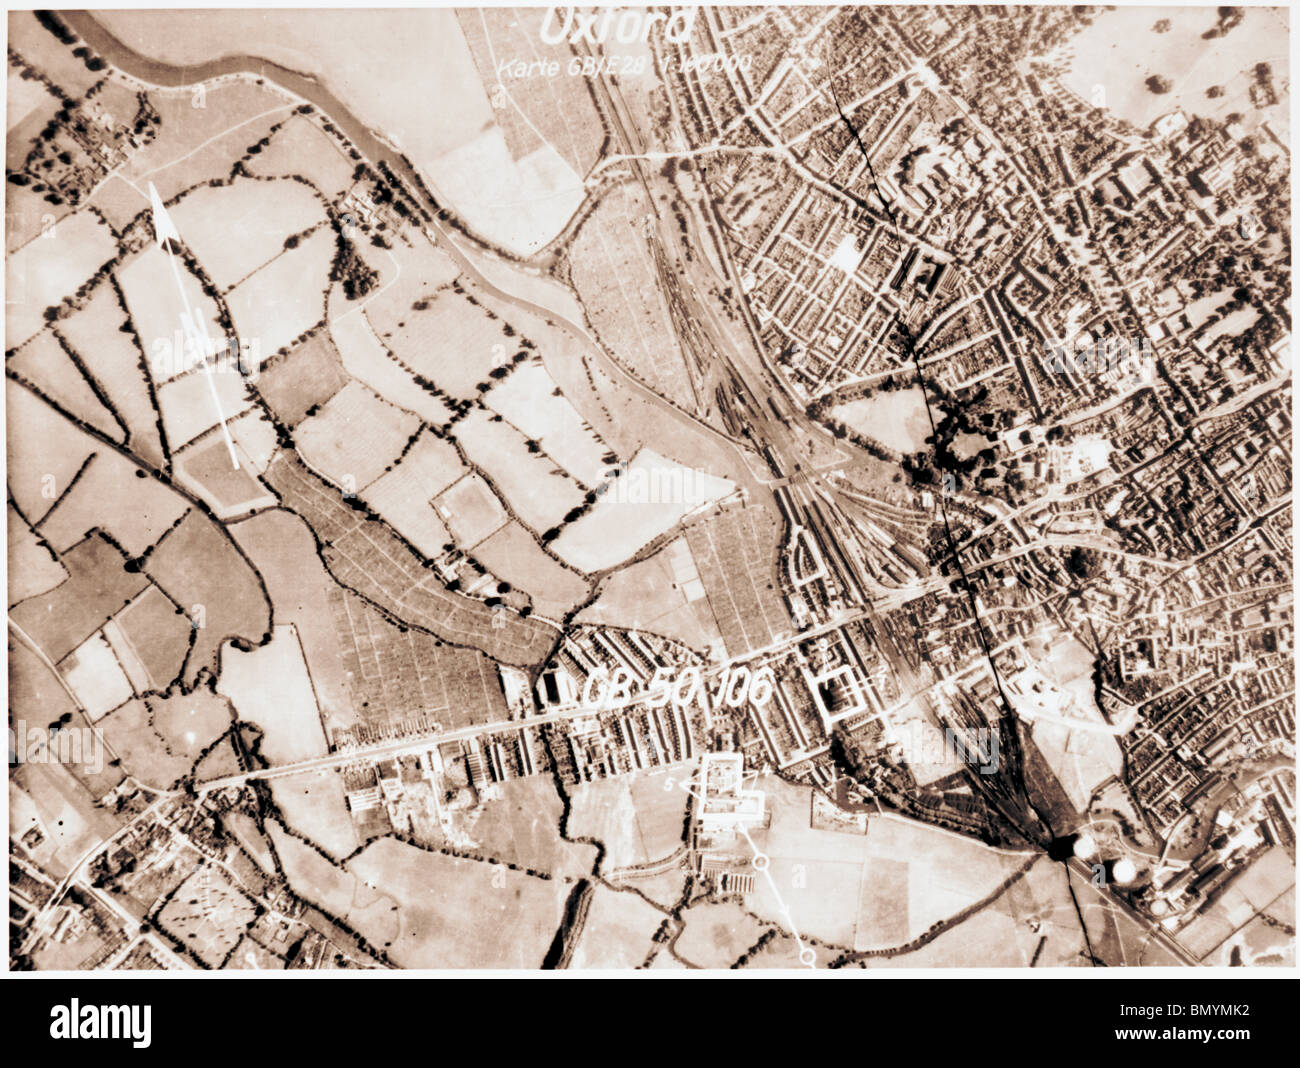 Oxford - Oxfordshire 1940 Luftwaffe Aerial Image - Stock Image